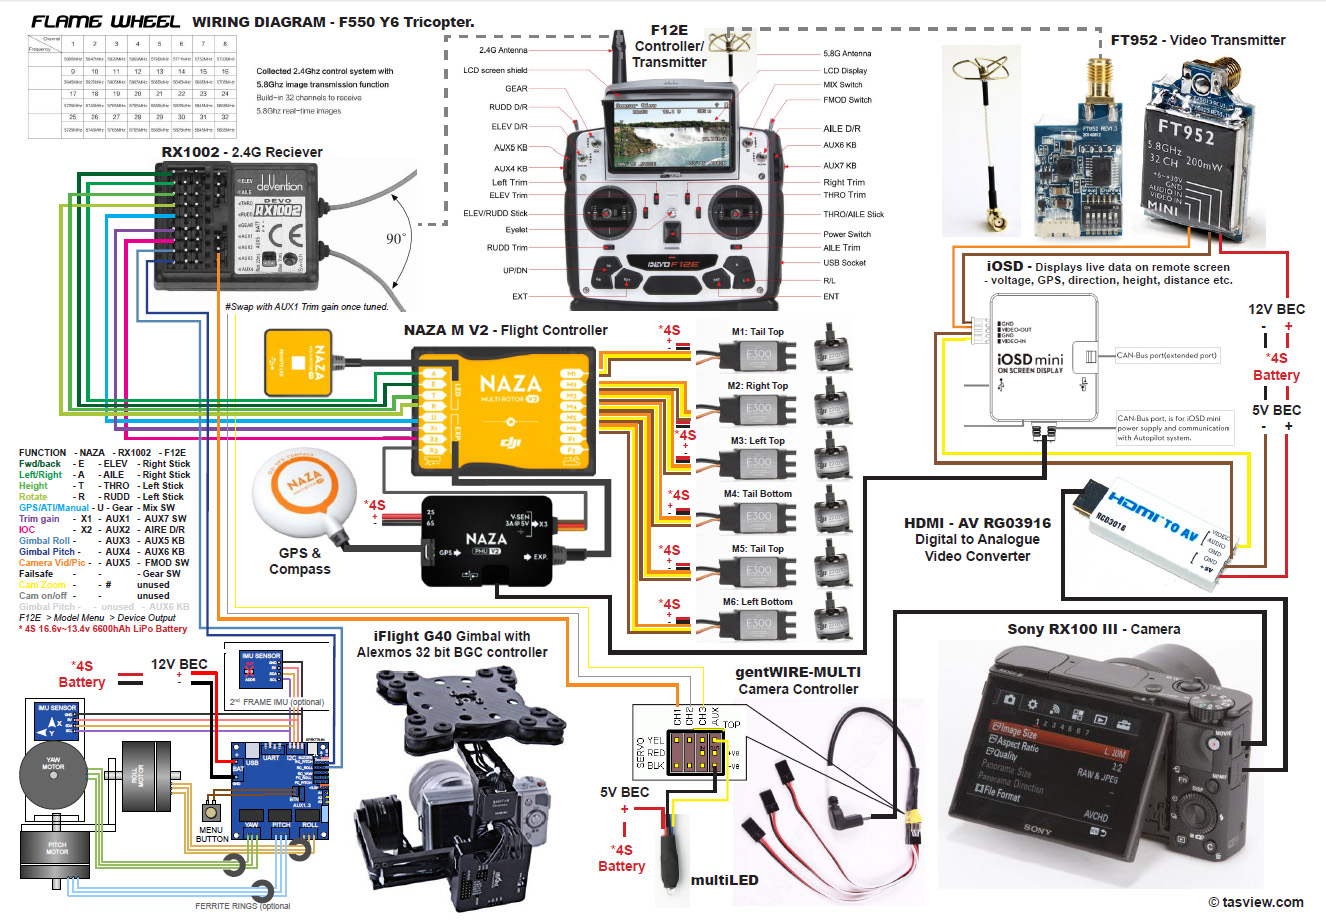 wiring_diagram f550y6 naza v2 wiring diagram diagram wiring diagrams for diy car repairs wiring diagram planet audio ac1500-1m at bayanpartner.co